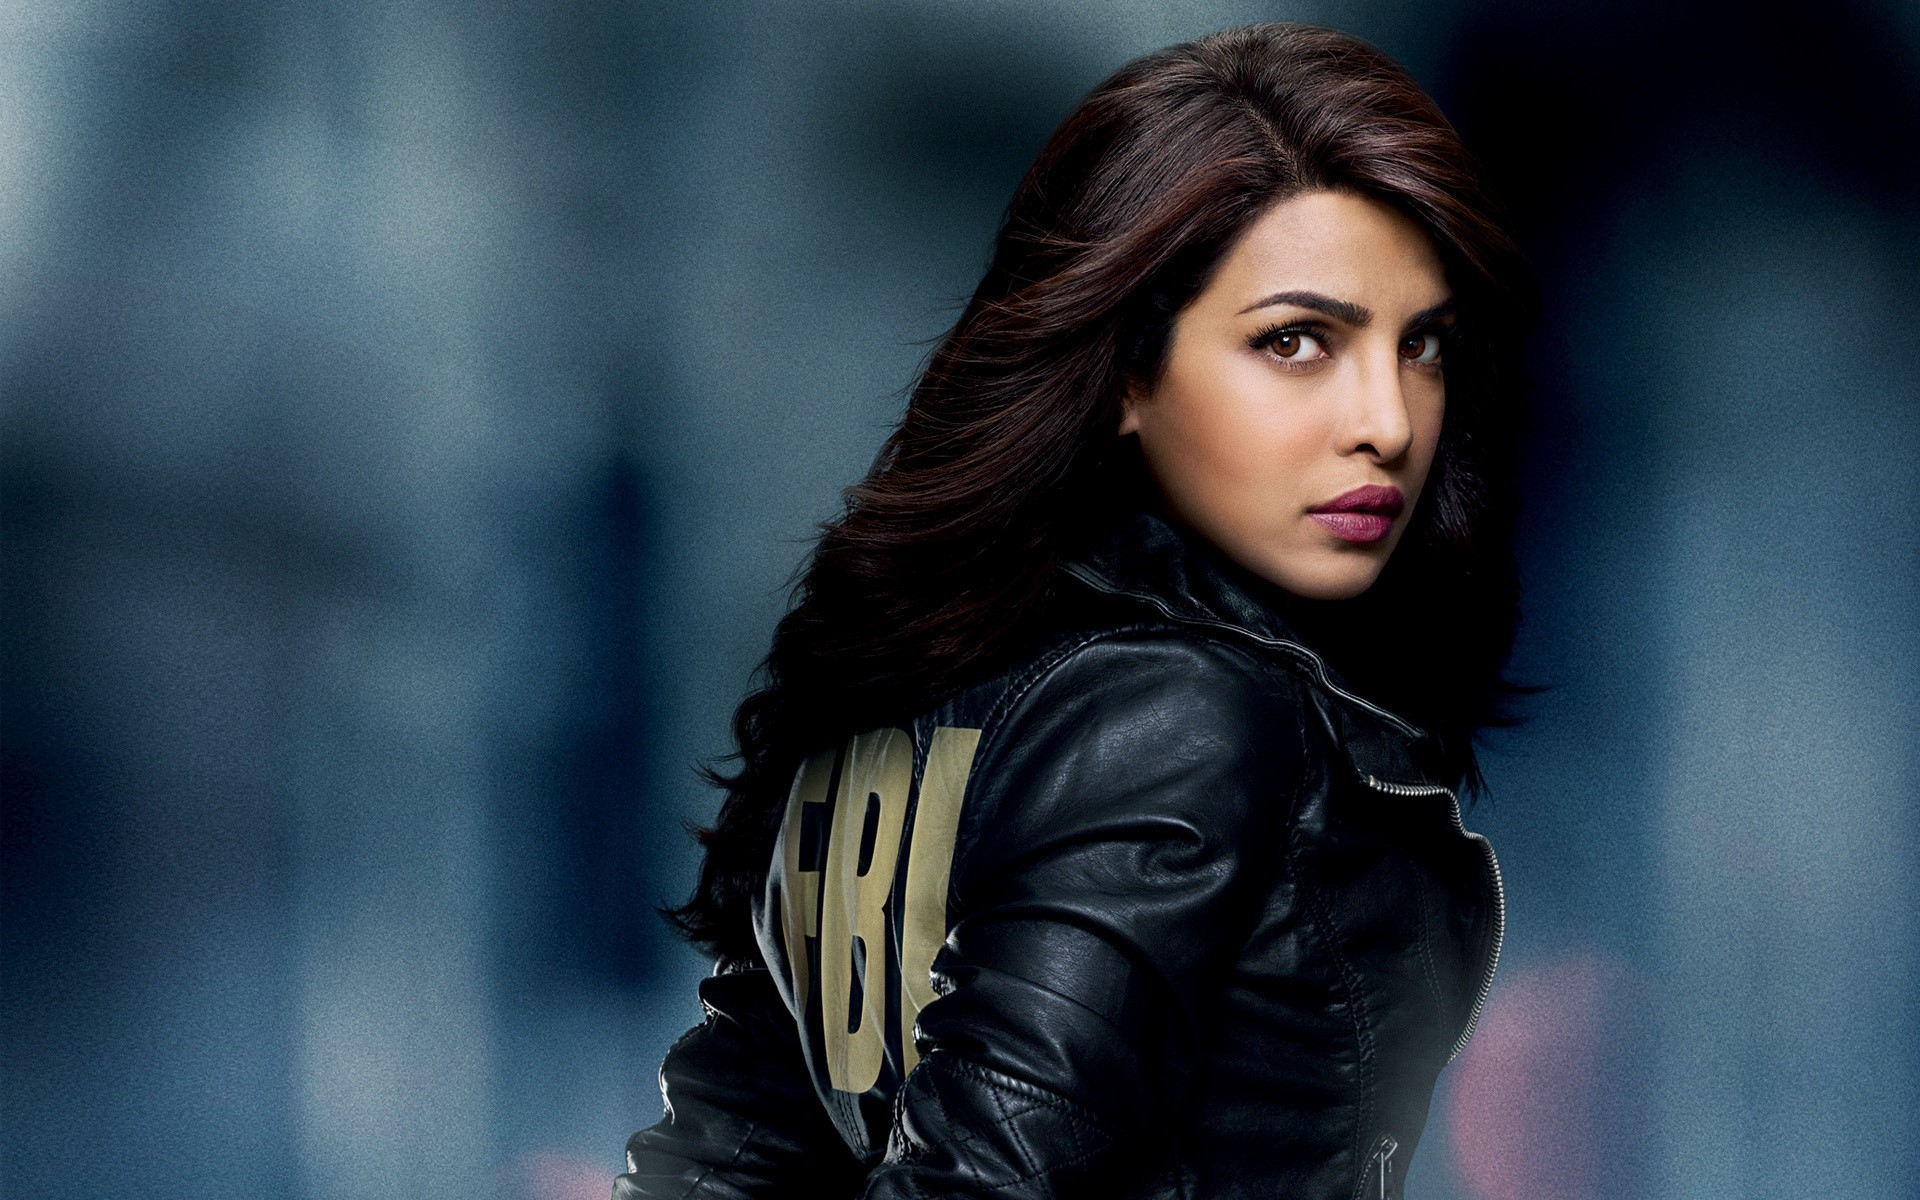 Wallpaper Priyanka Chopra in the Quantico series